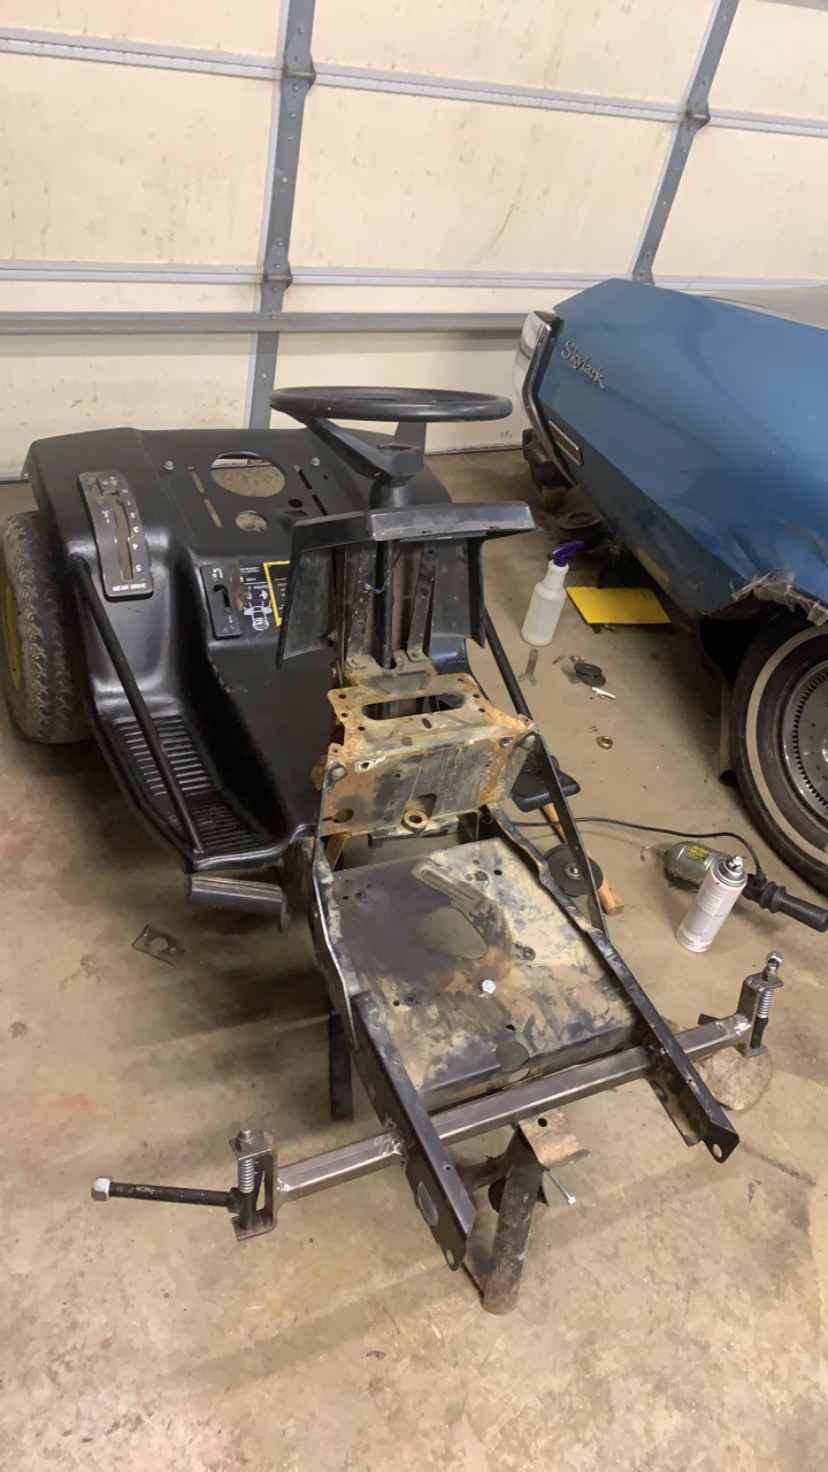 [DNF][2020 Build-Off Entry] Justin's Jammin Deere Df190b10